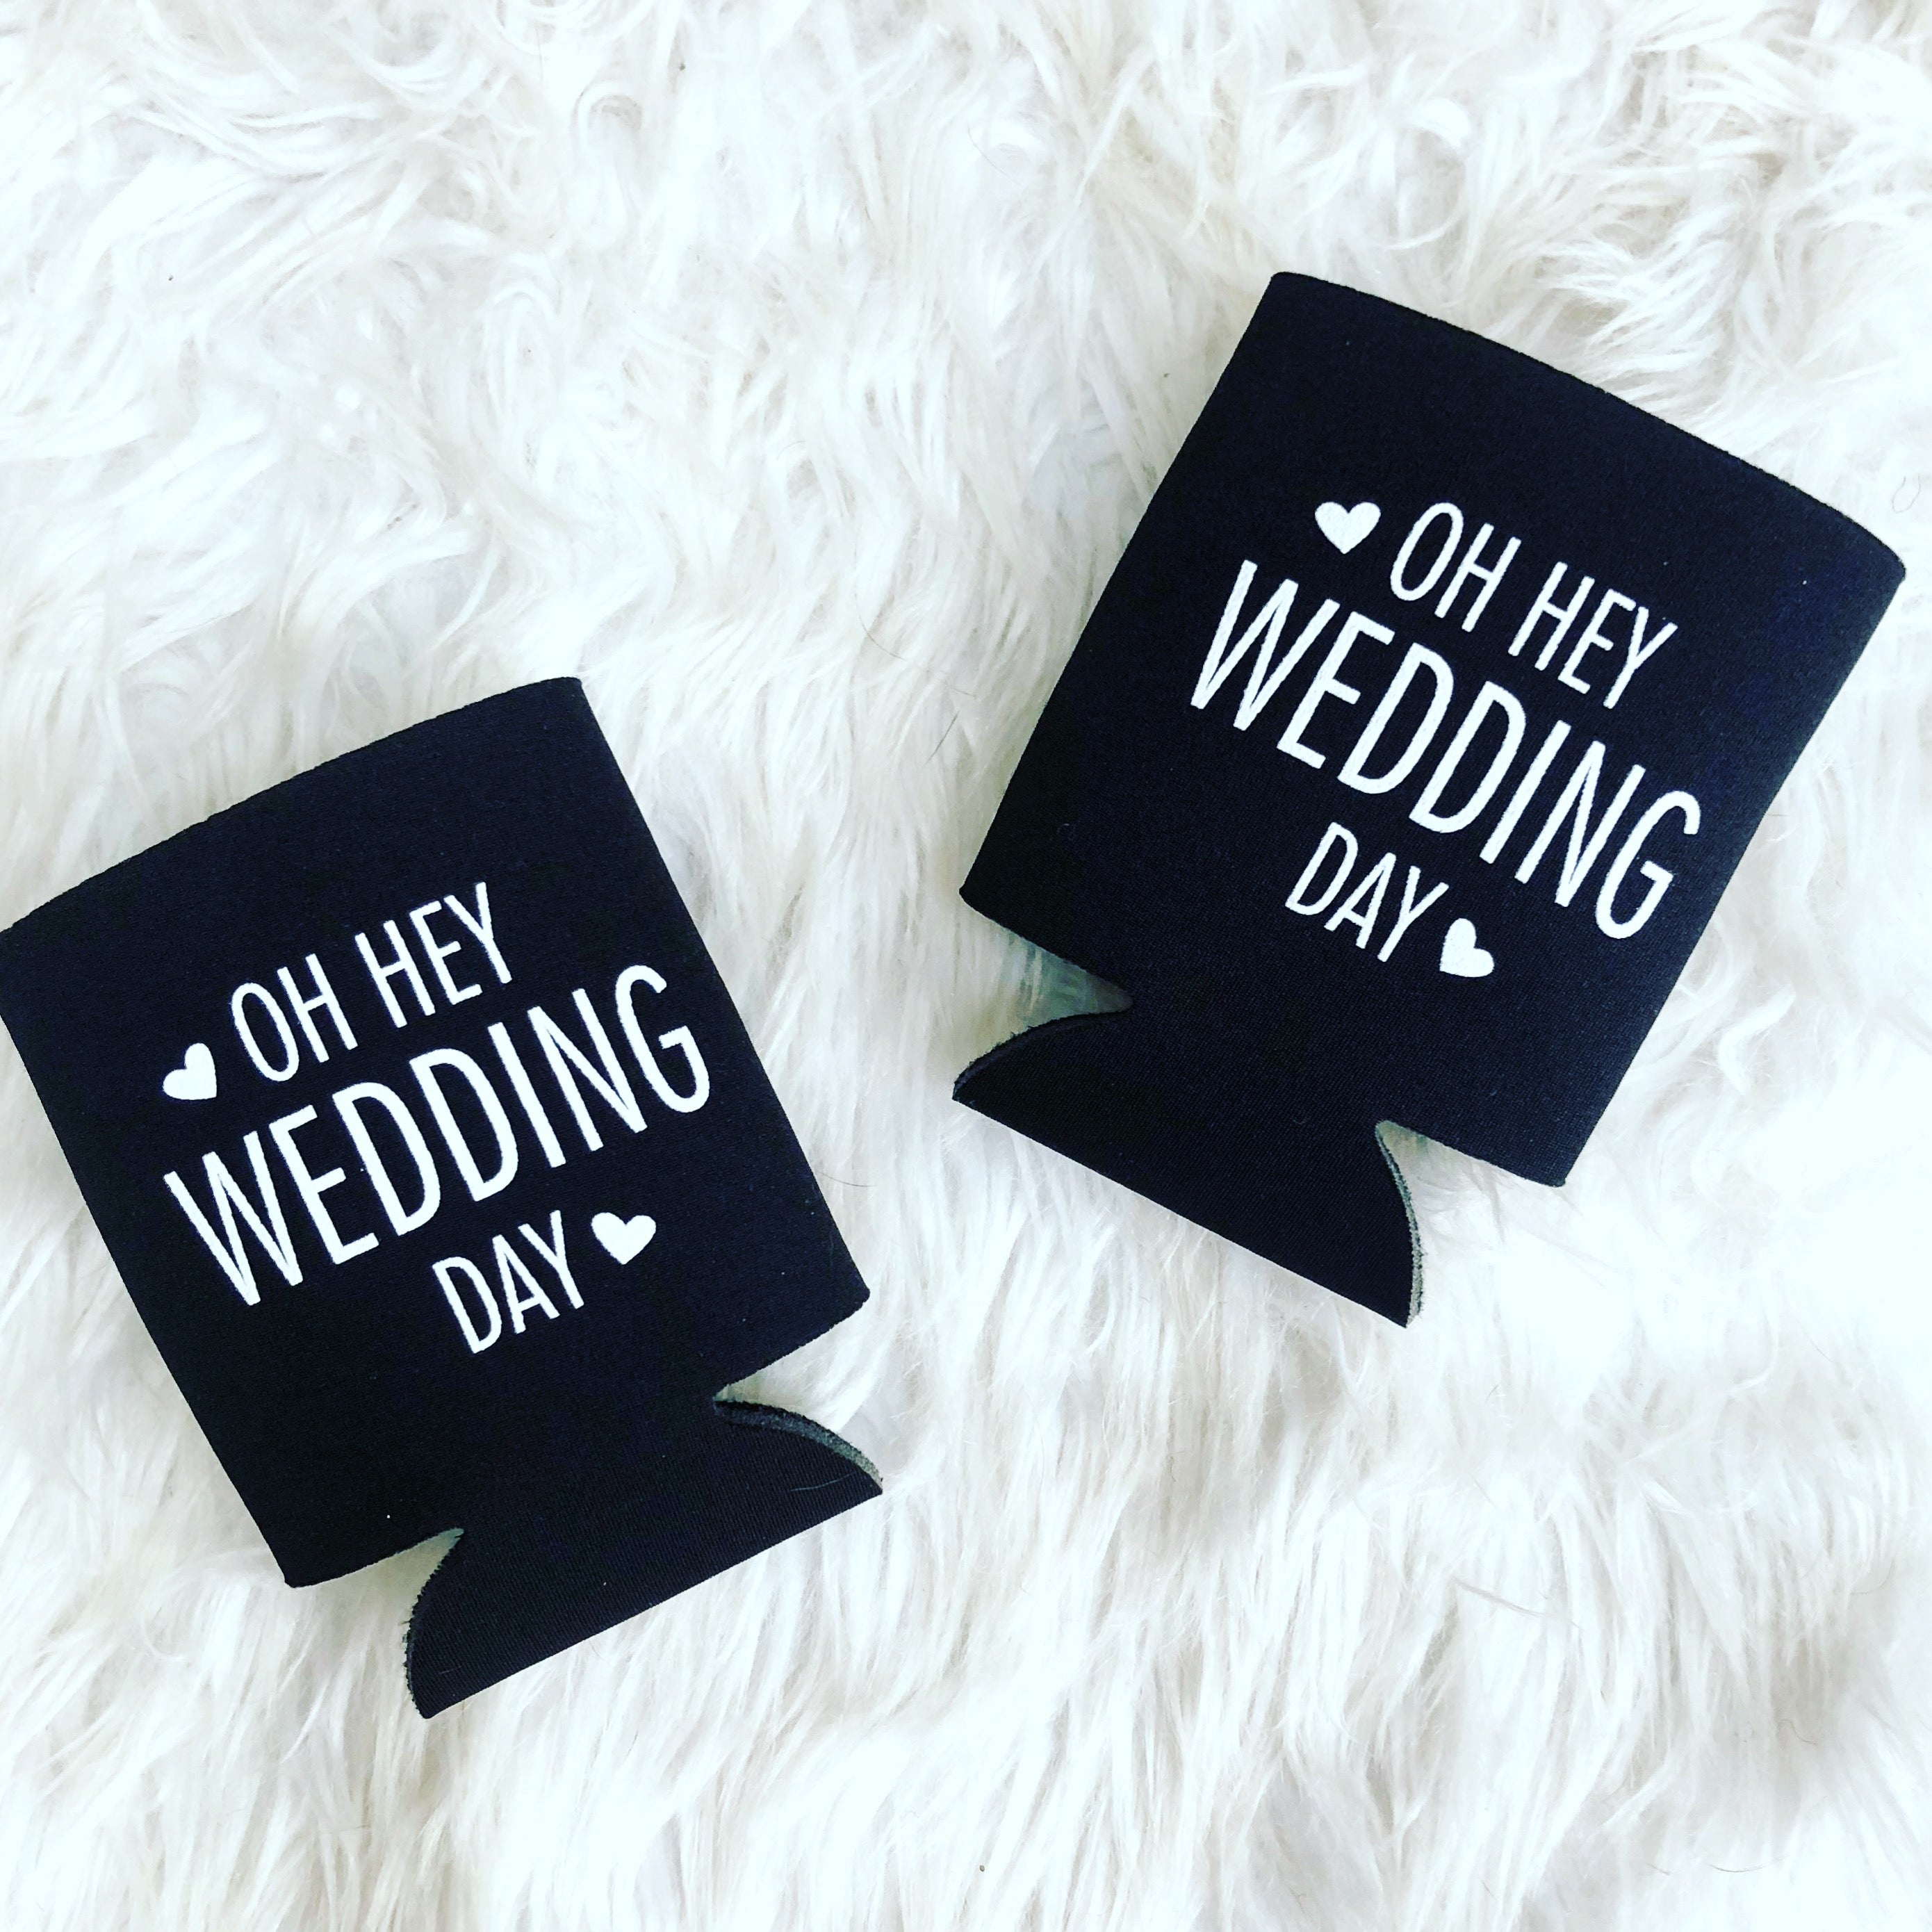 Oh Hey Wedding Day pocket coolies - 4 for $12